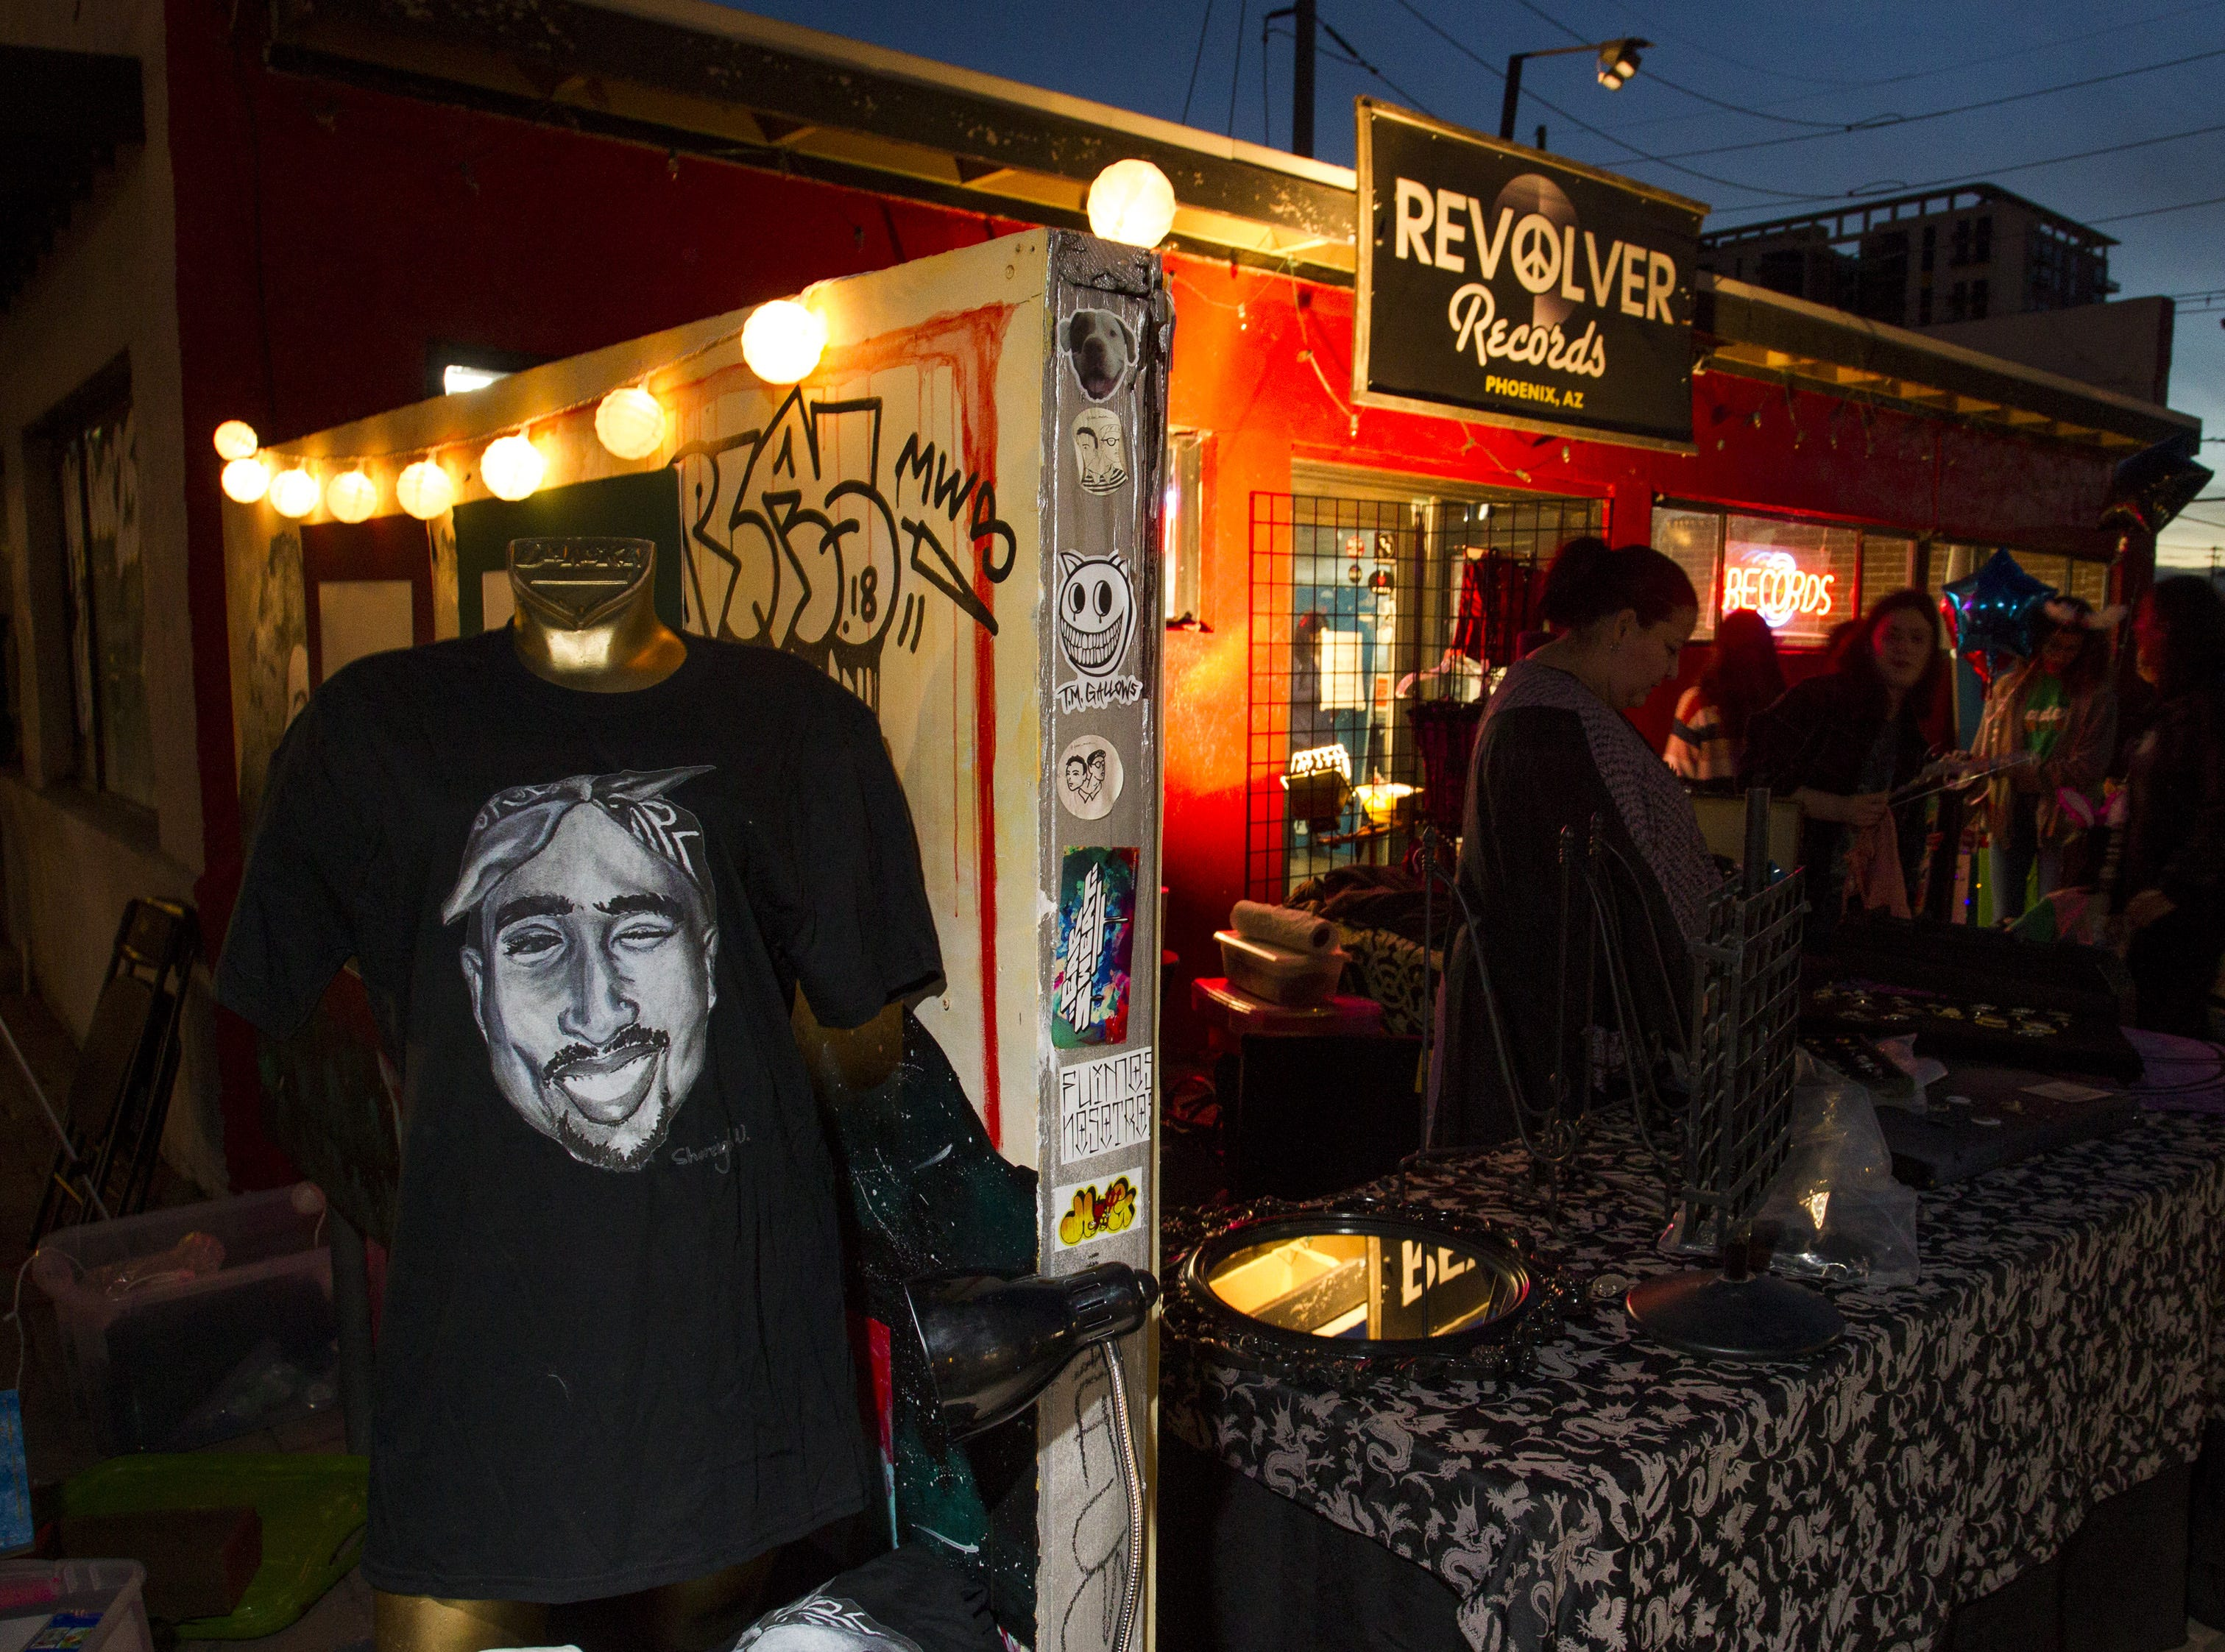 A T-shirt with Tupac Shakur appears to give a wink toward Revolver Records in downtown Phoenix.